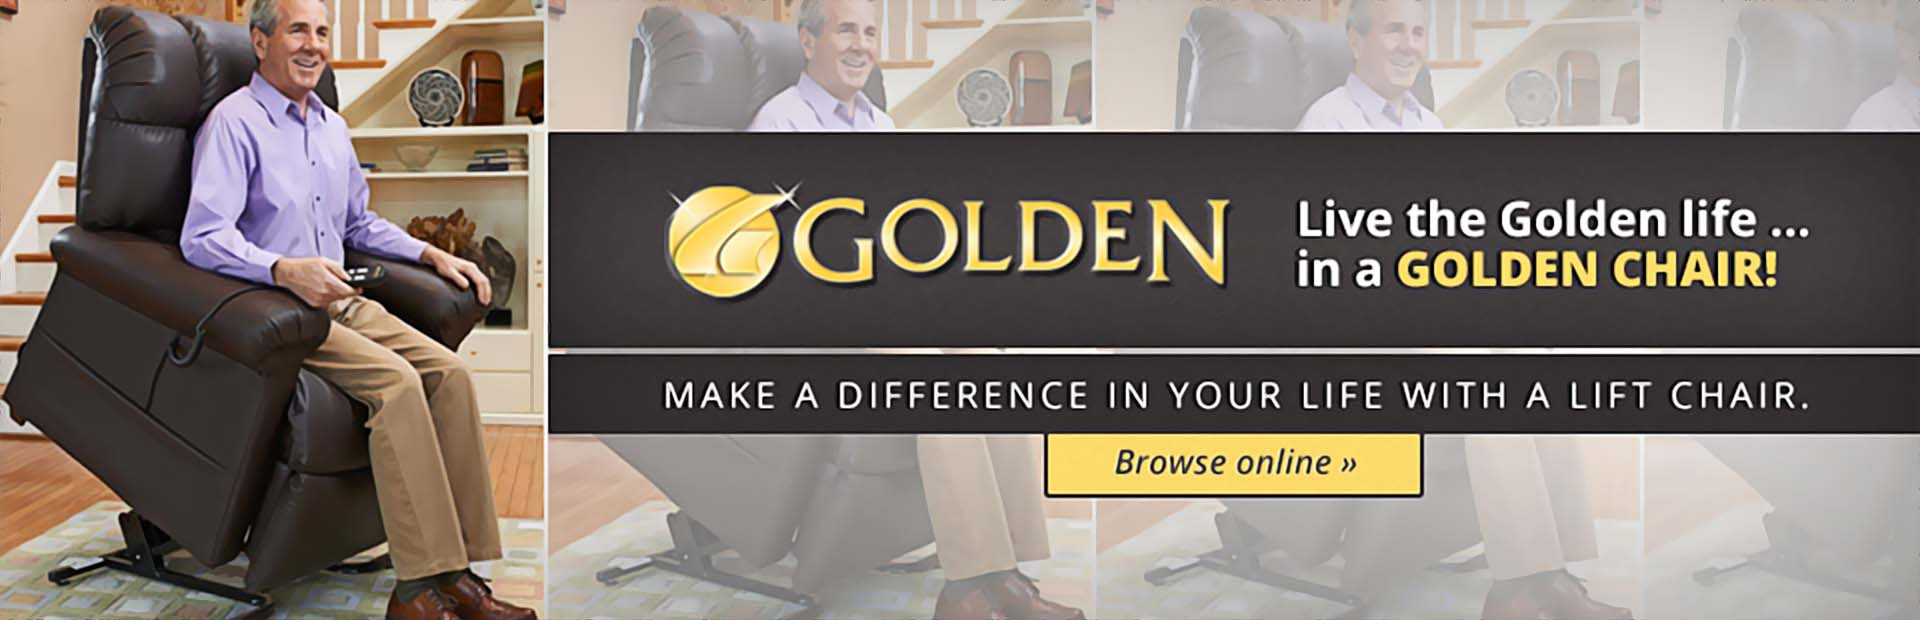 Live the Golden life... in a Golden chair! Click here to browse our selection.